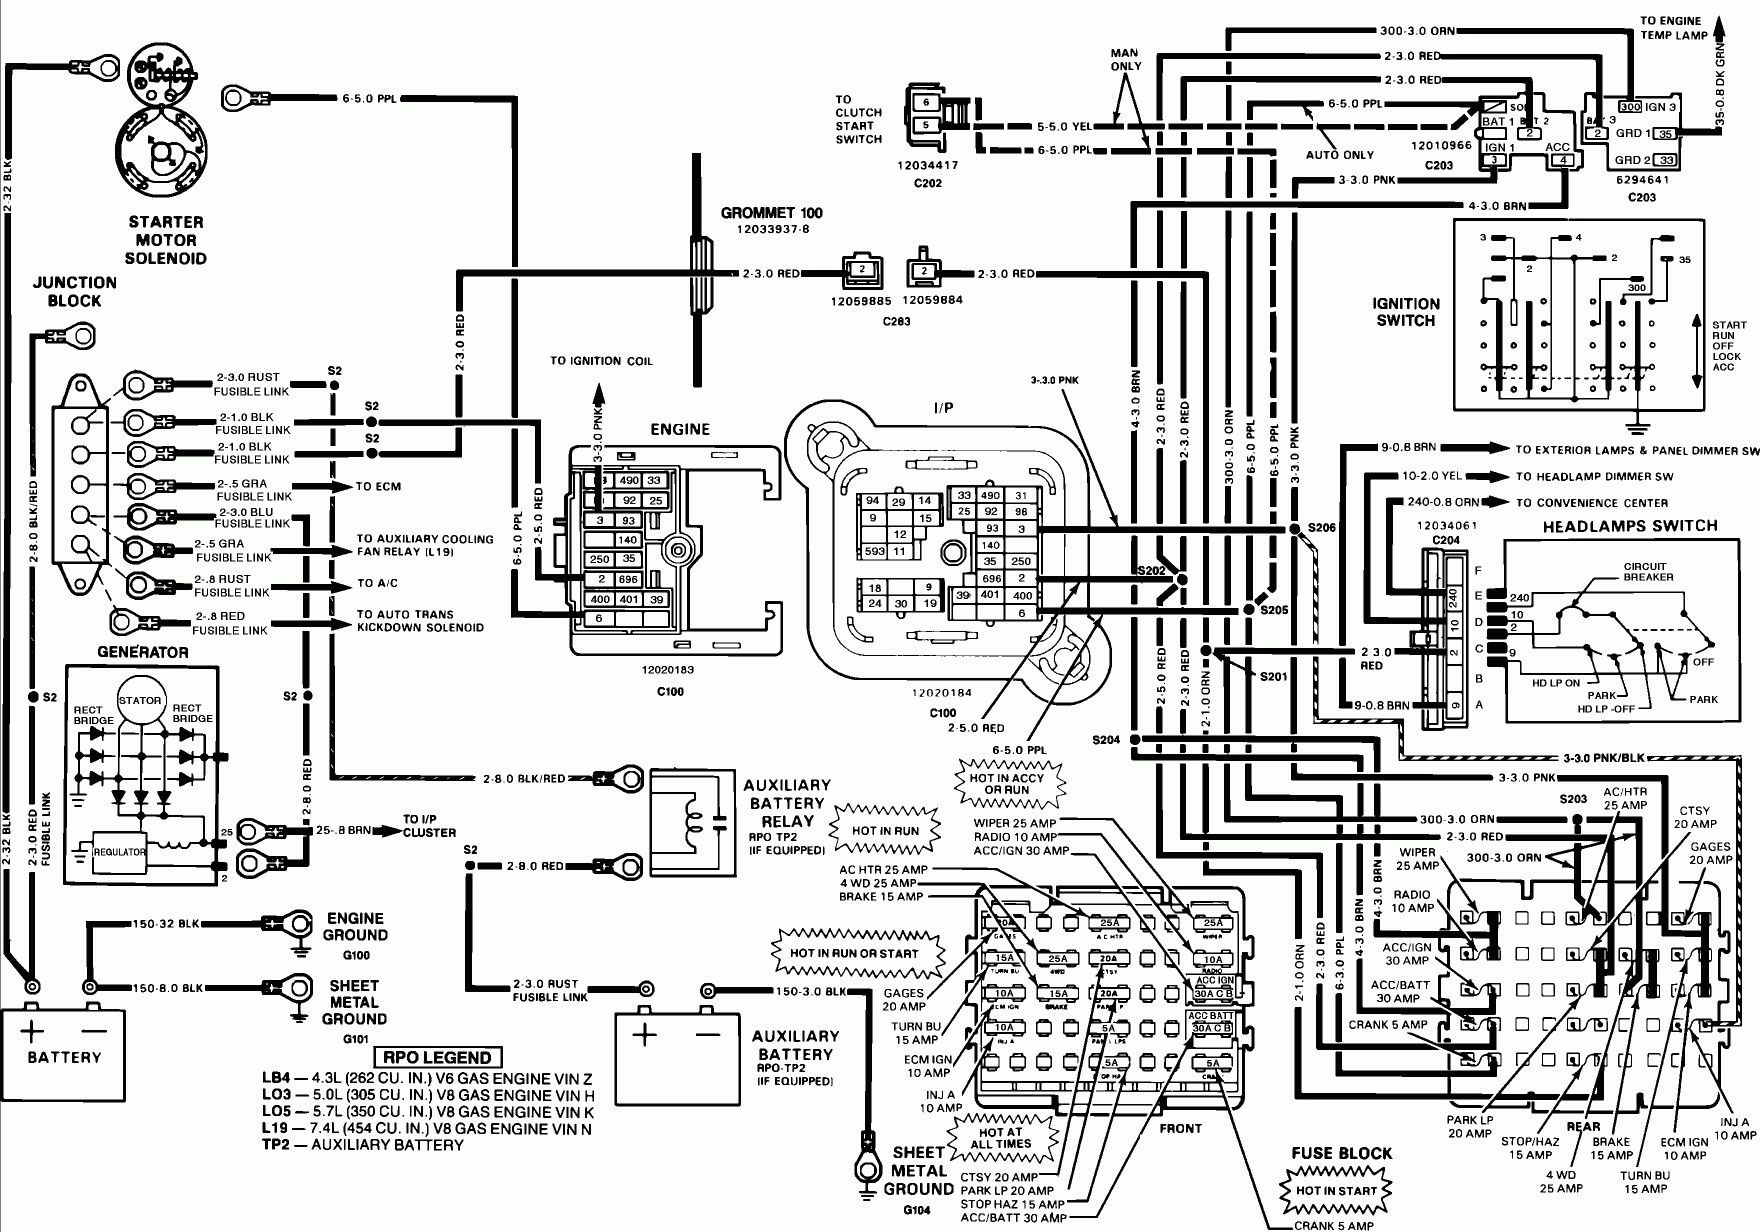 1999 Plymouth Voyager Engine Diagram Wiring Diagram for 1999 Gmc sonoma Trusted Wiring Diagram Of 1999 Plymouth Voyager Engine Diagram